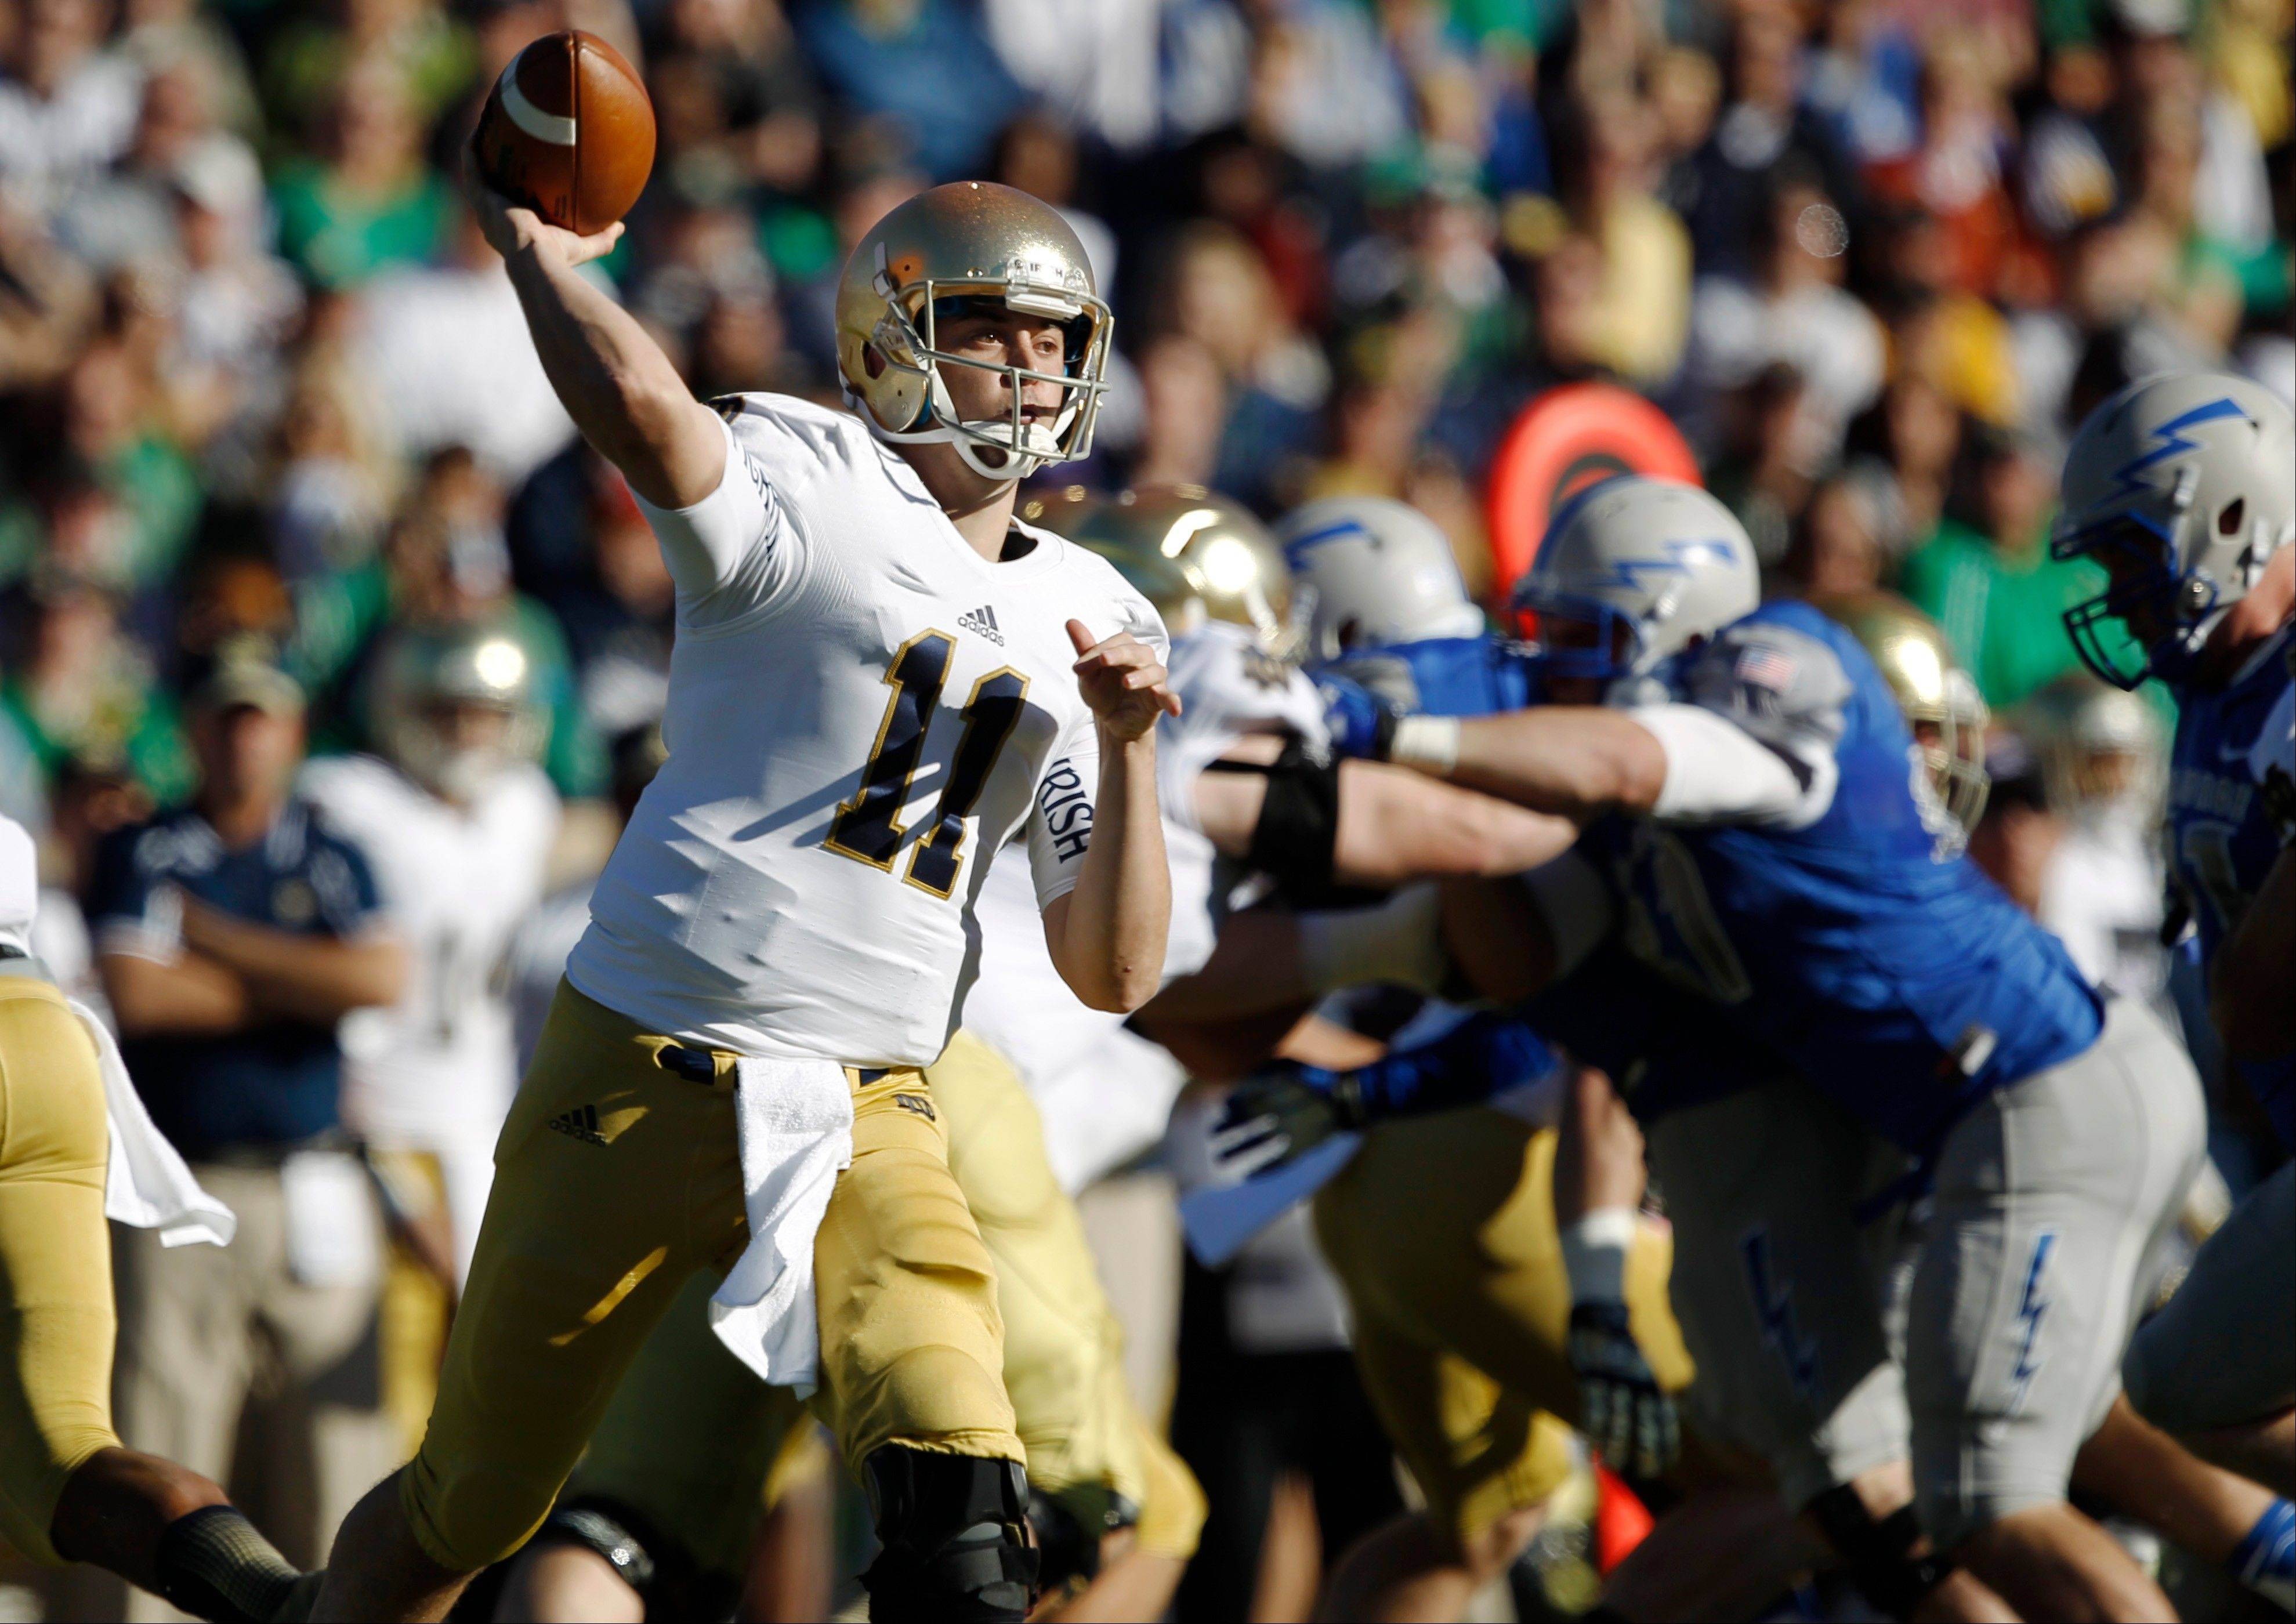 Notre Dame quarterback Tommy Rees passes against Air Force during Saturday�s road win. With Notre Dame (6-2) trying to make a push for a BCS bowl berth, Rees seems to have regained his touch.